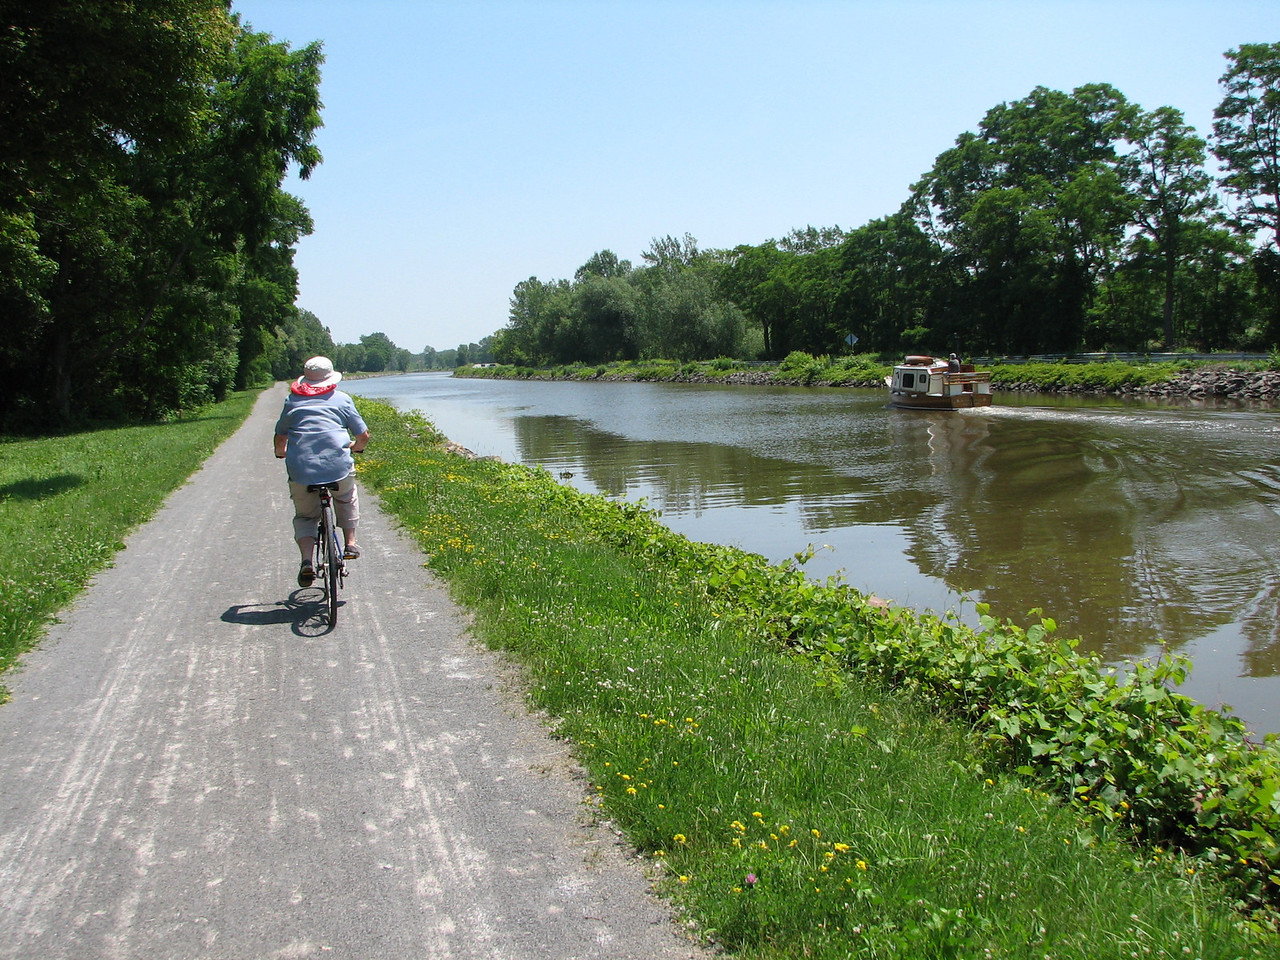 The day was sunny but very comfortable temperatures, and so Linda and Don decided to use our bikes on towpath which runs by the canal.  The towpaths are popular with bikers and walkers, and in fact, there was more traffic on the path than on the canal.  The path is fine gravel or even paved in many spots, but very easy to ride on. <br /> <br /> Linda peddles to catch up to the BPE.